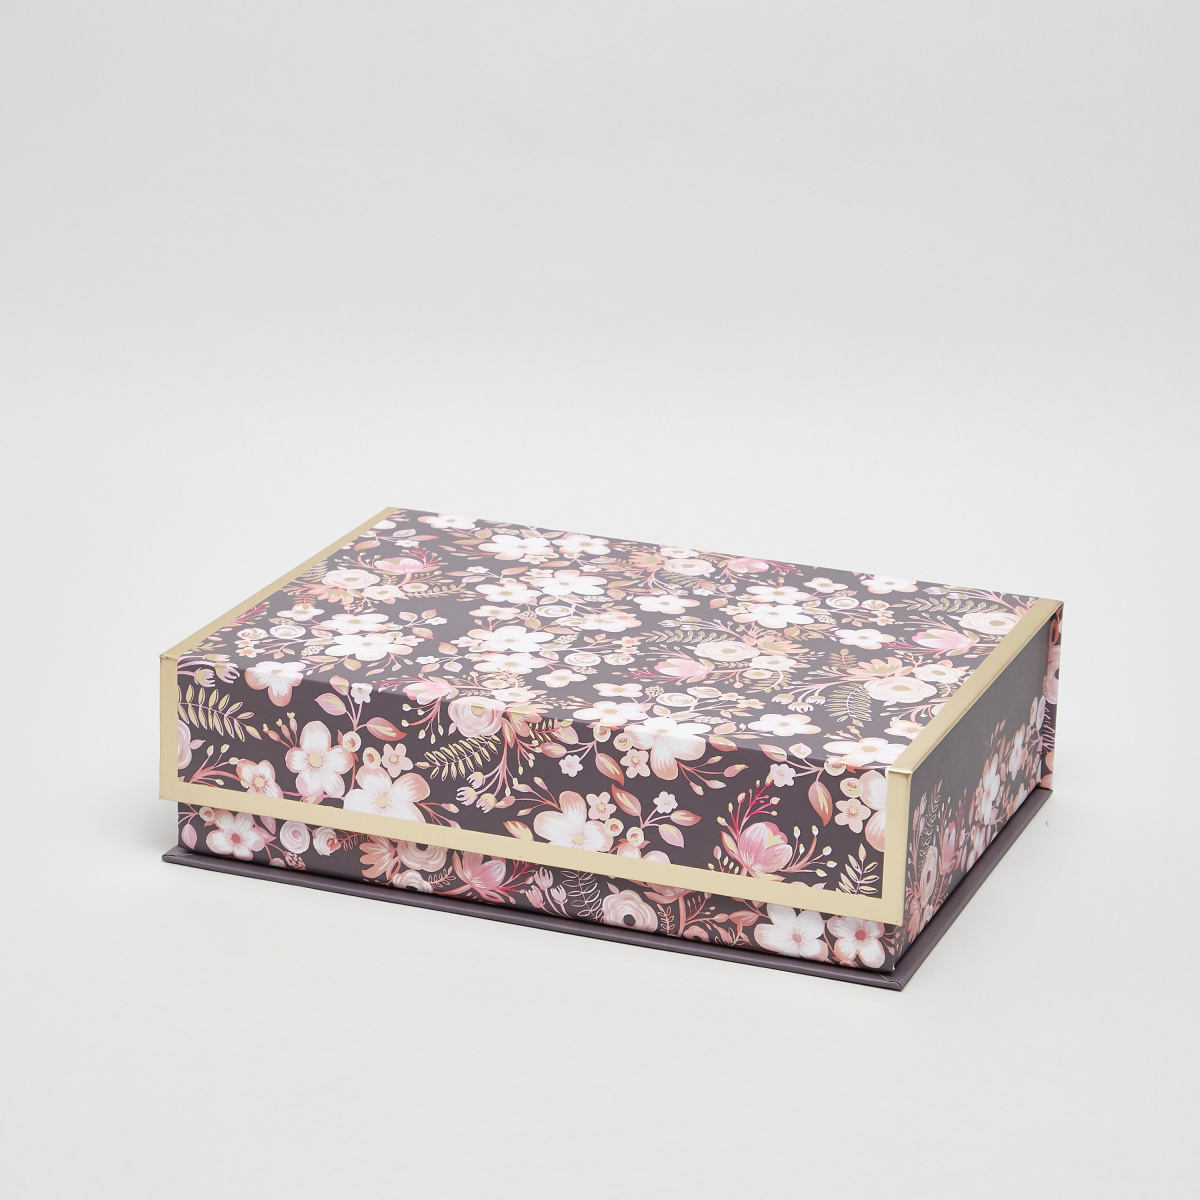 Lady Jayne Gray Dusty Floral Print Nested Box - 32x23x9 cms